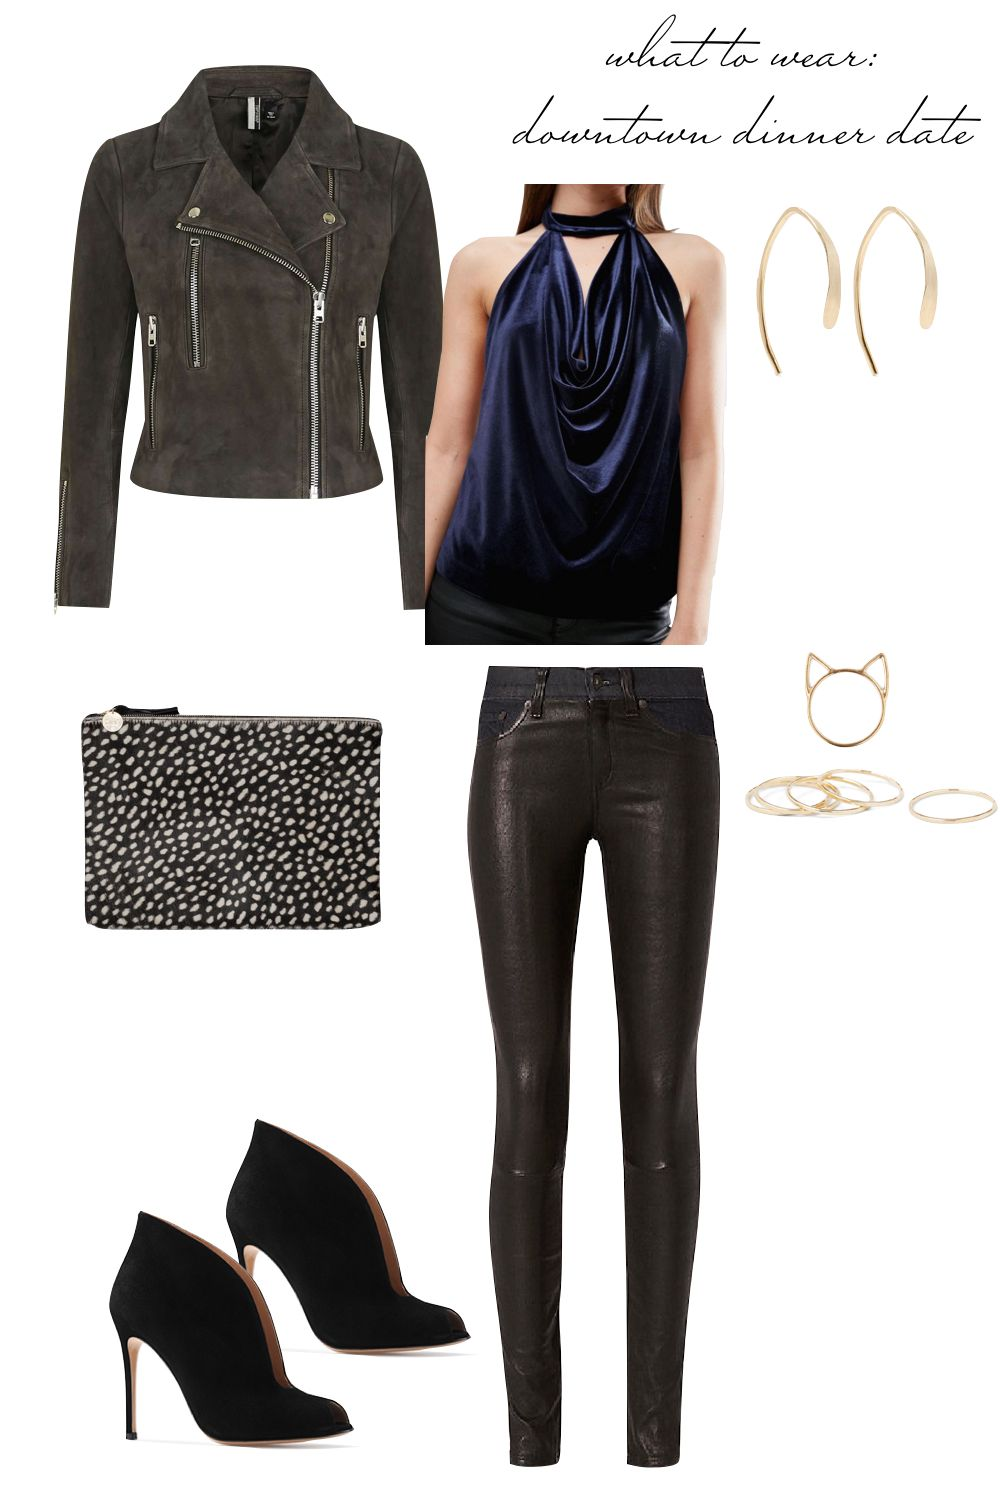 Date Night Outfit Ideas - What to Wear to a Downtown Dinner Date ...